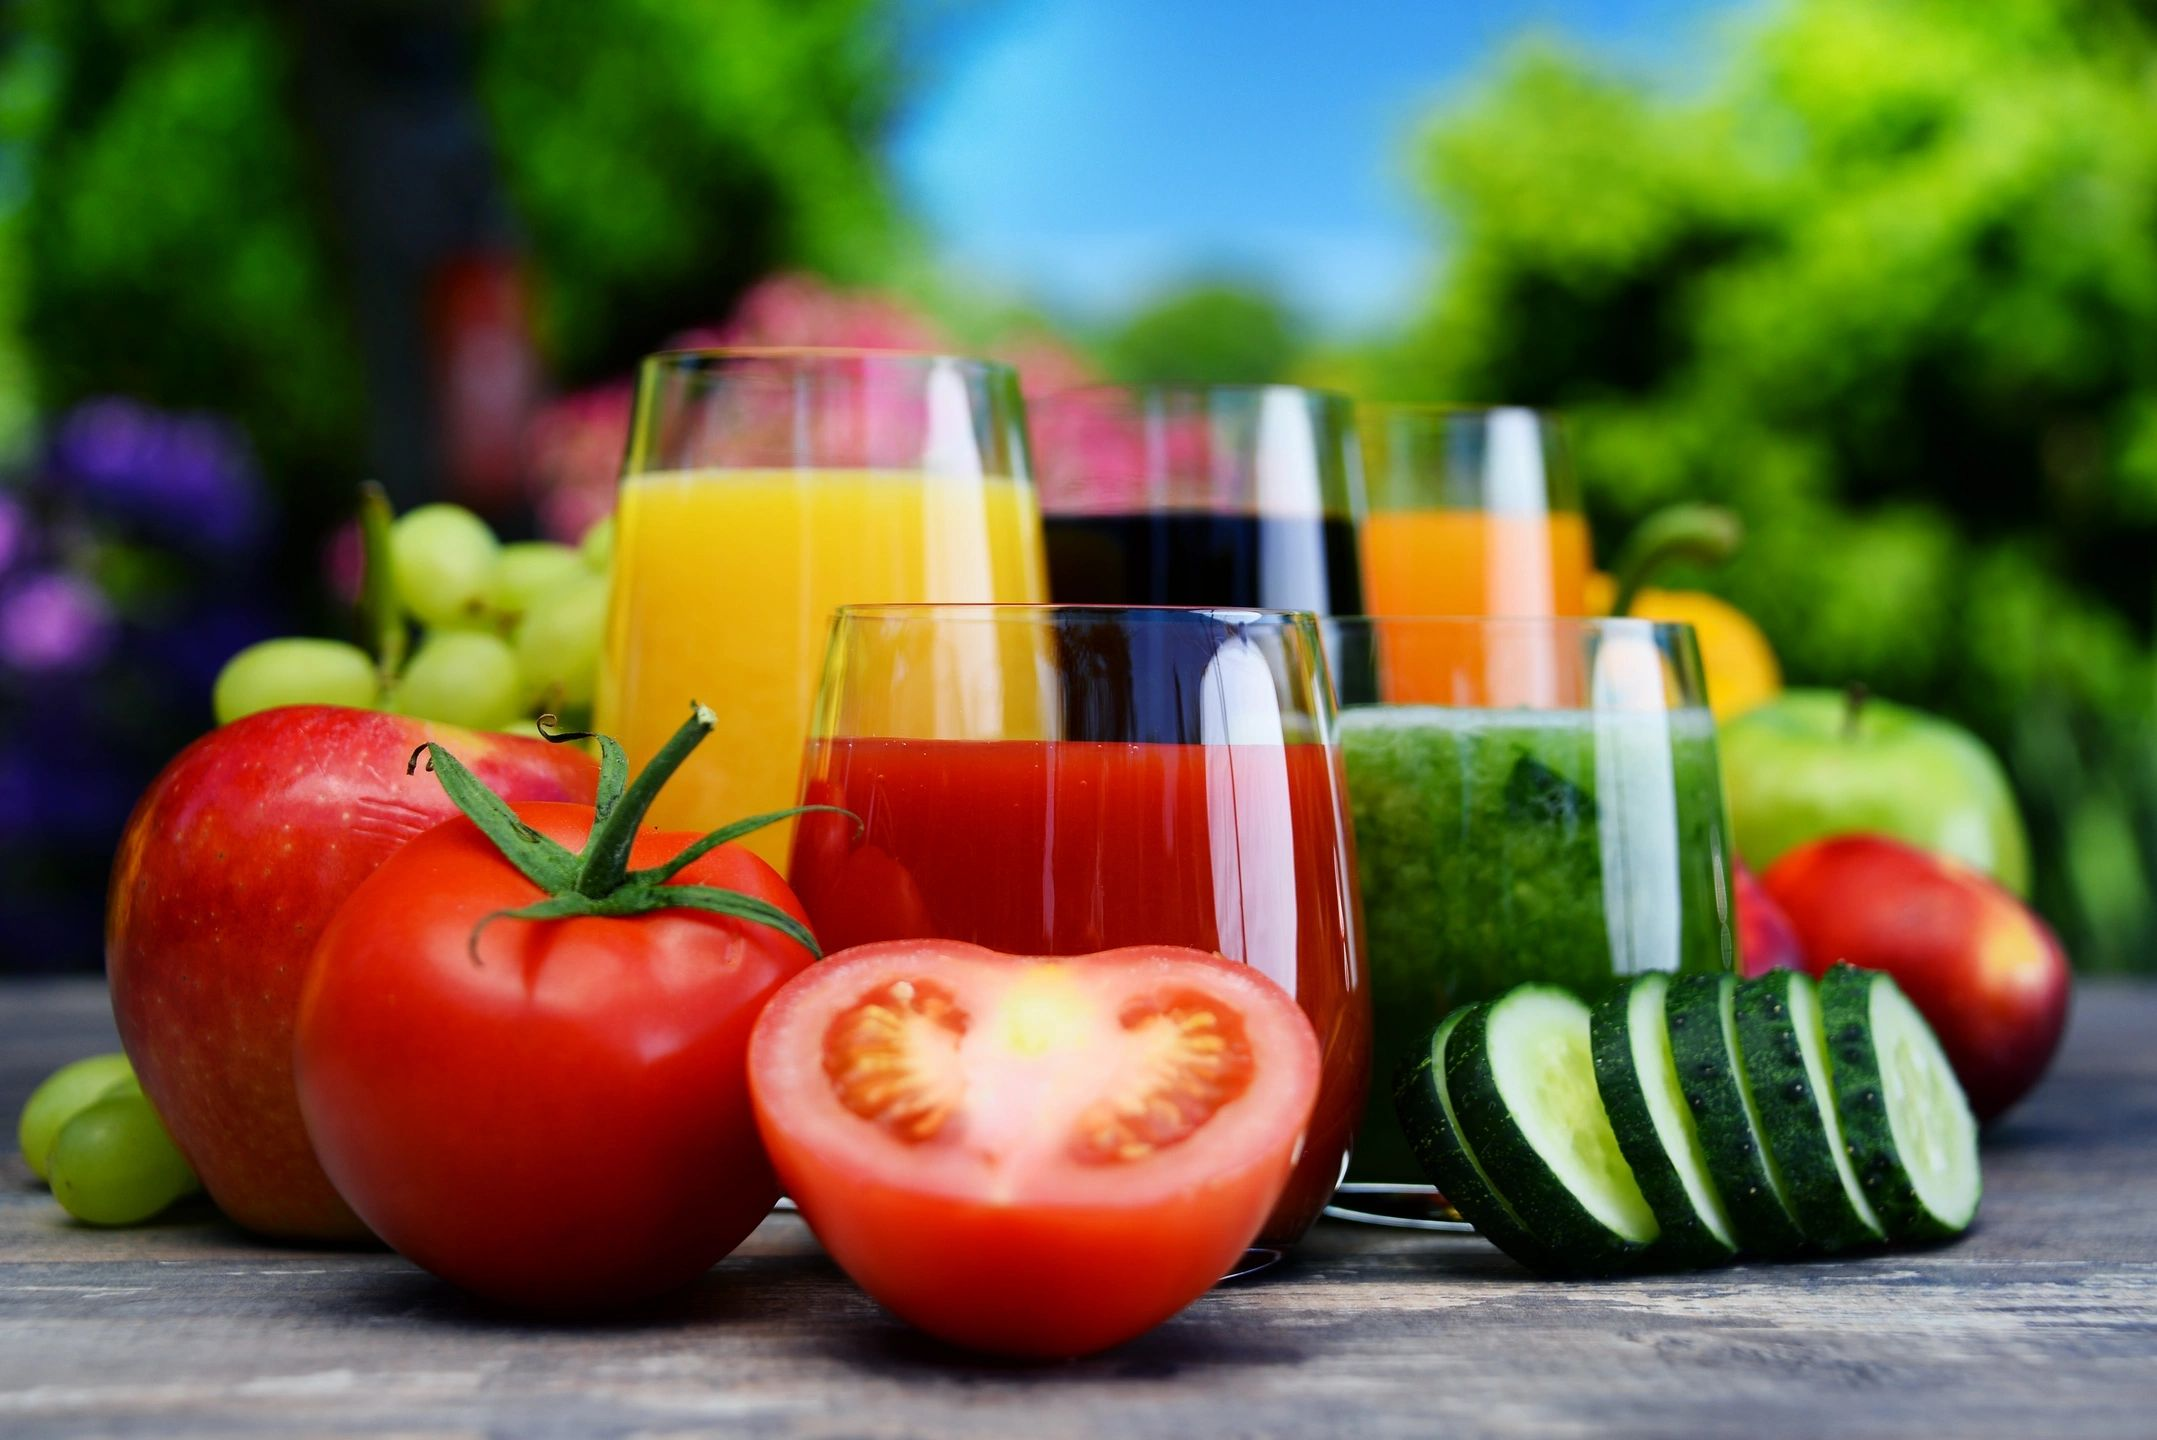 Top 4 Foods to Support You Through Anxious Moods